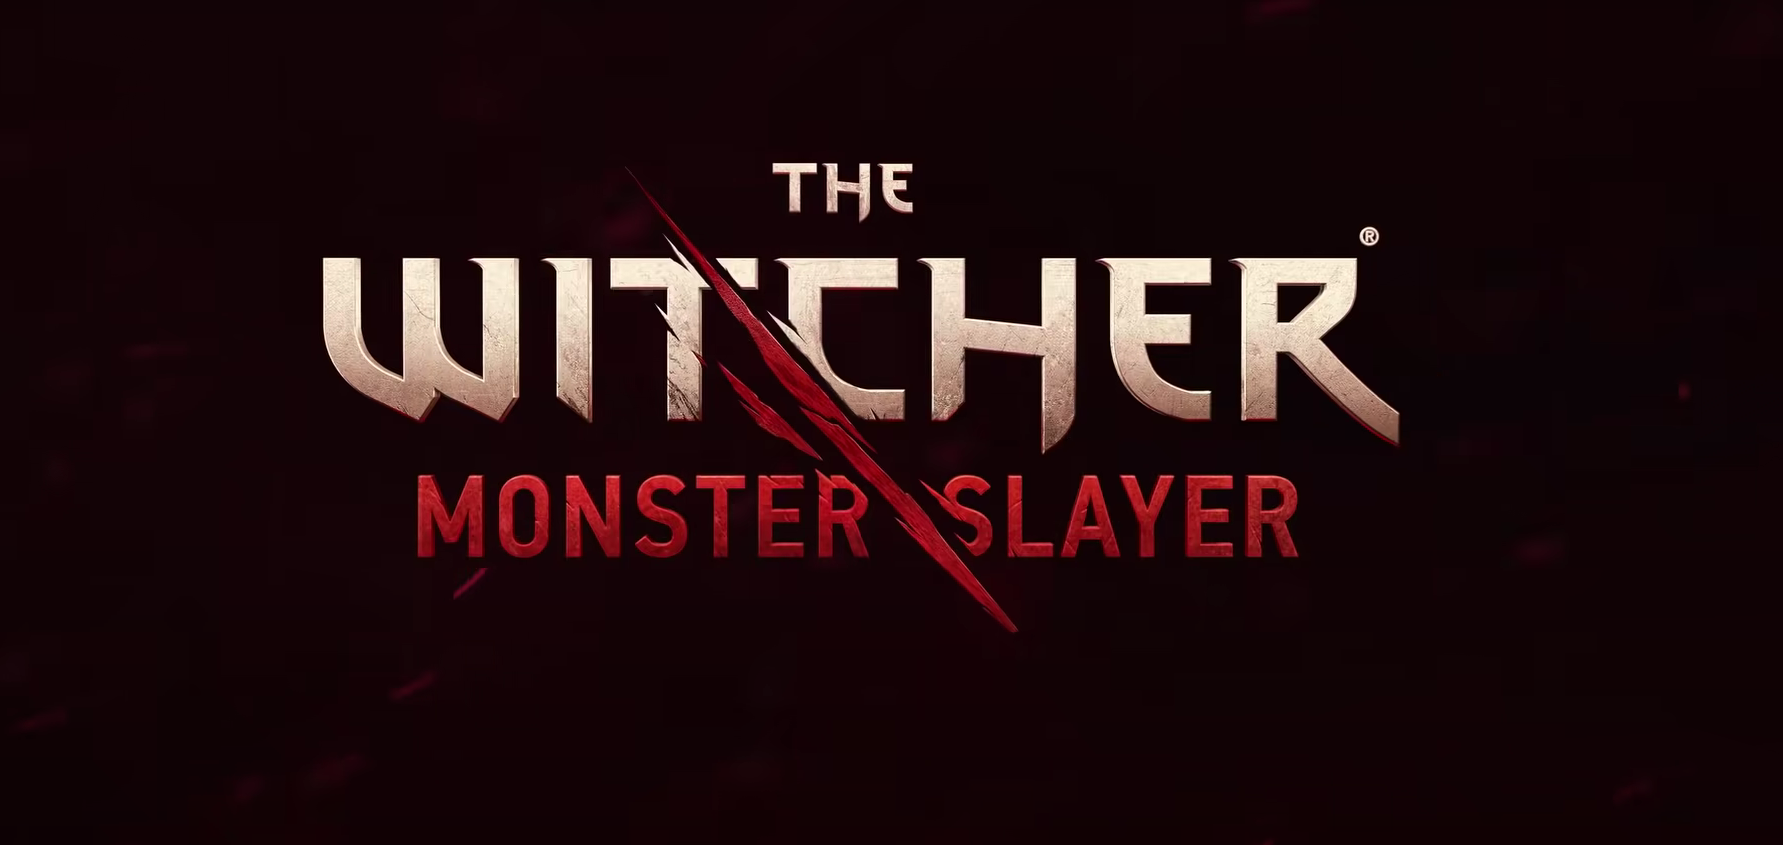 The Witcher Monster Slayer - Logo